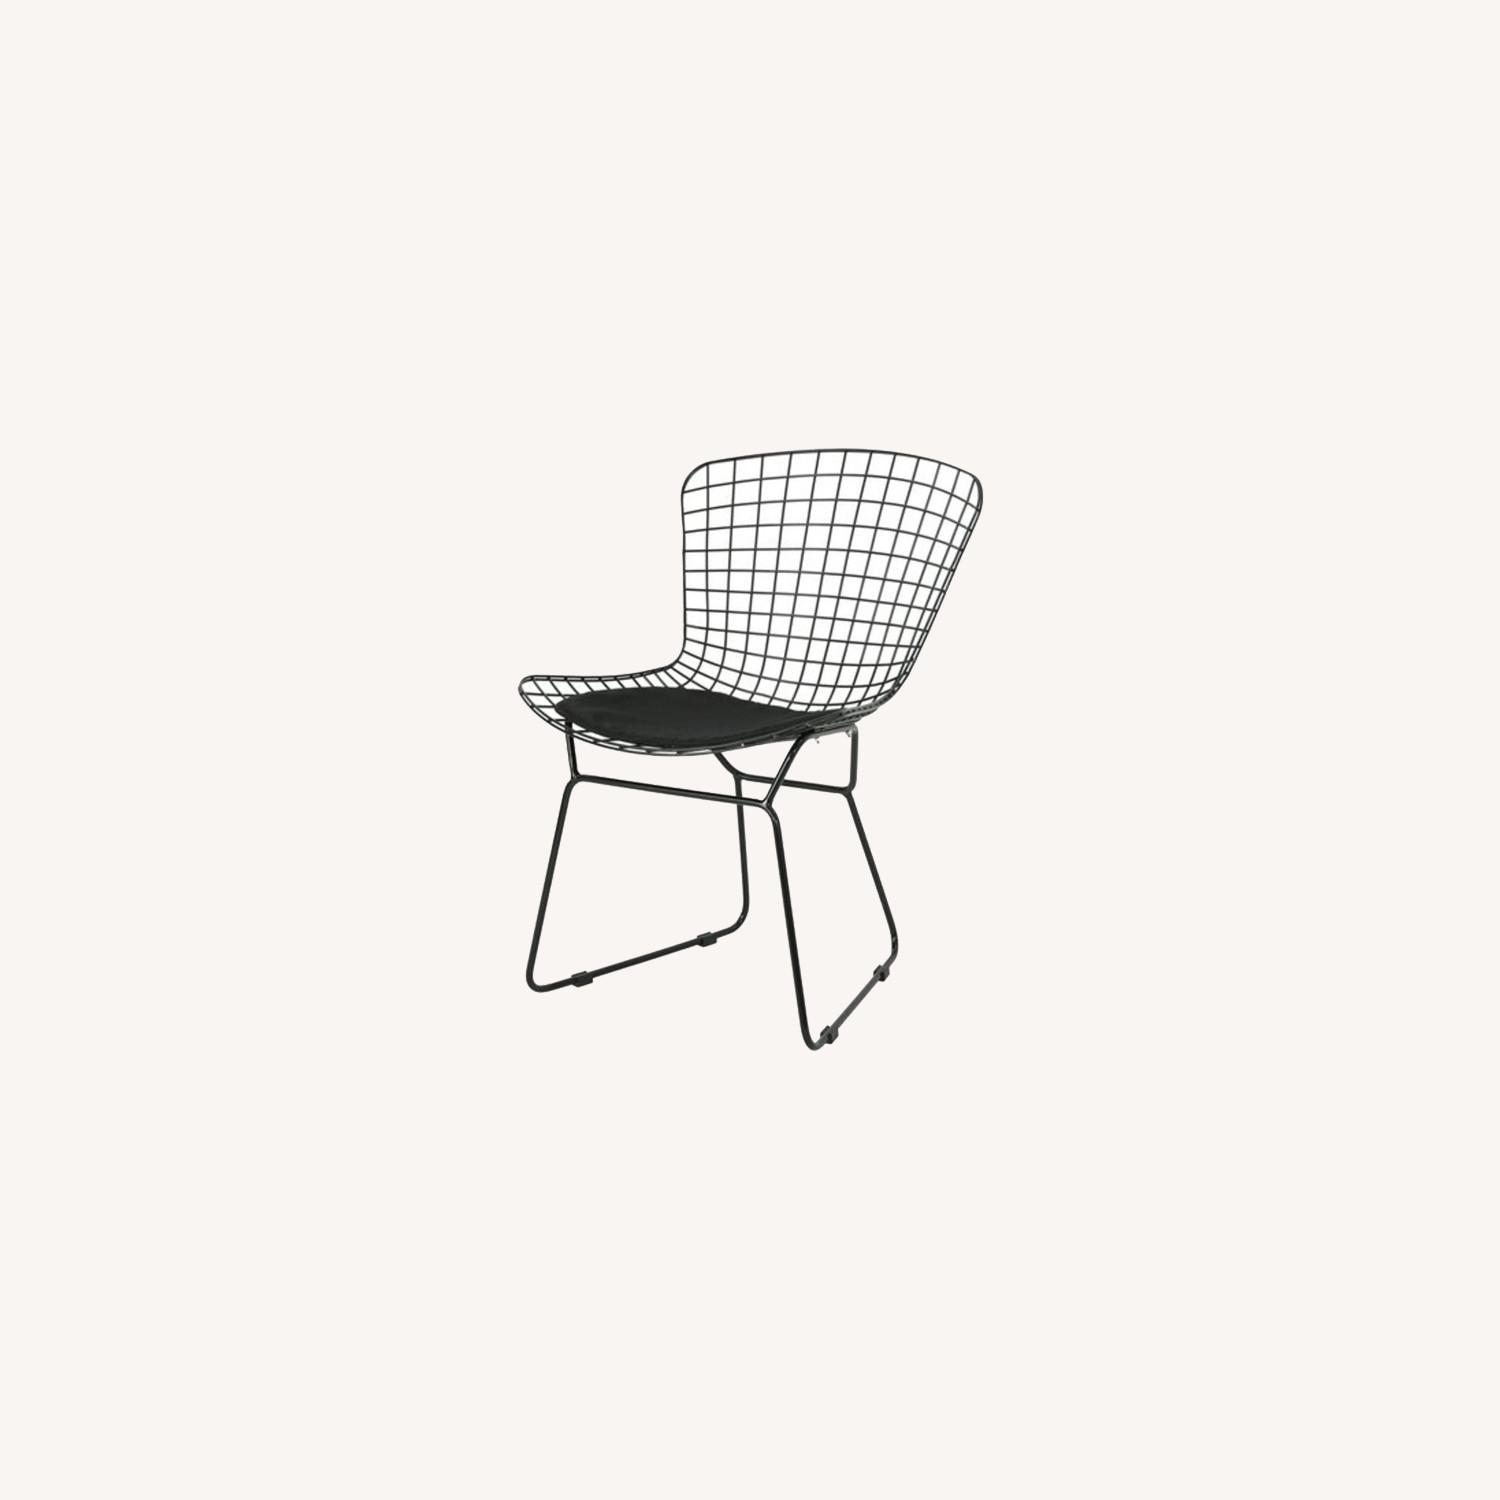 Wayfair Hively Dining Chair with Cushion - image-0